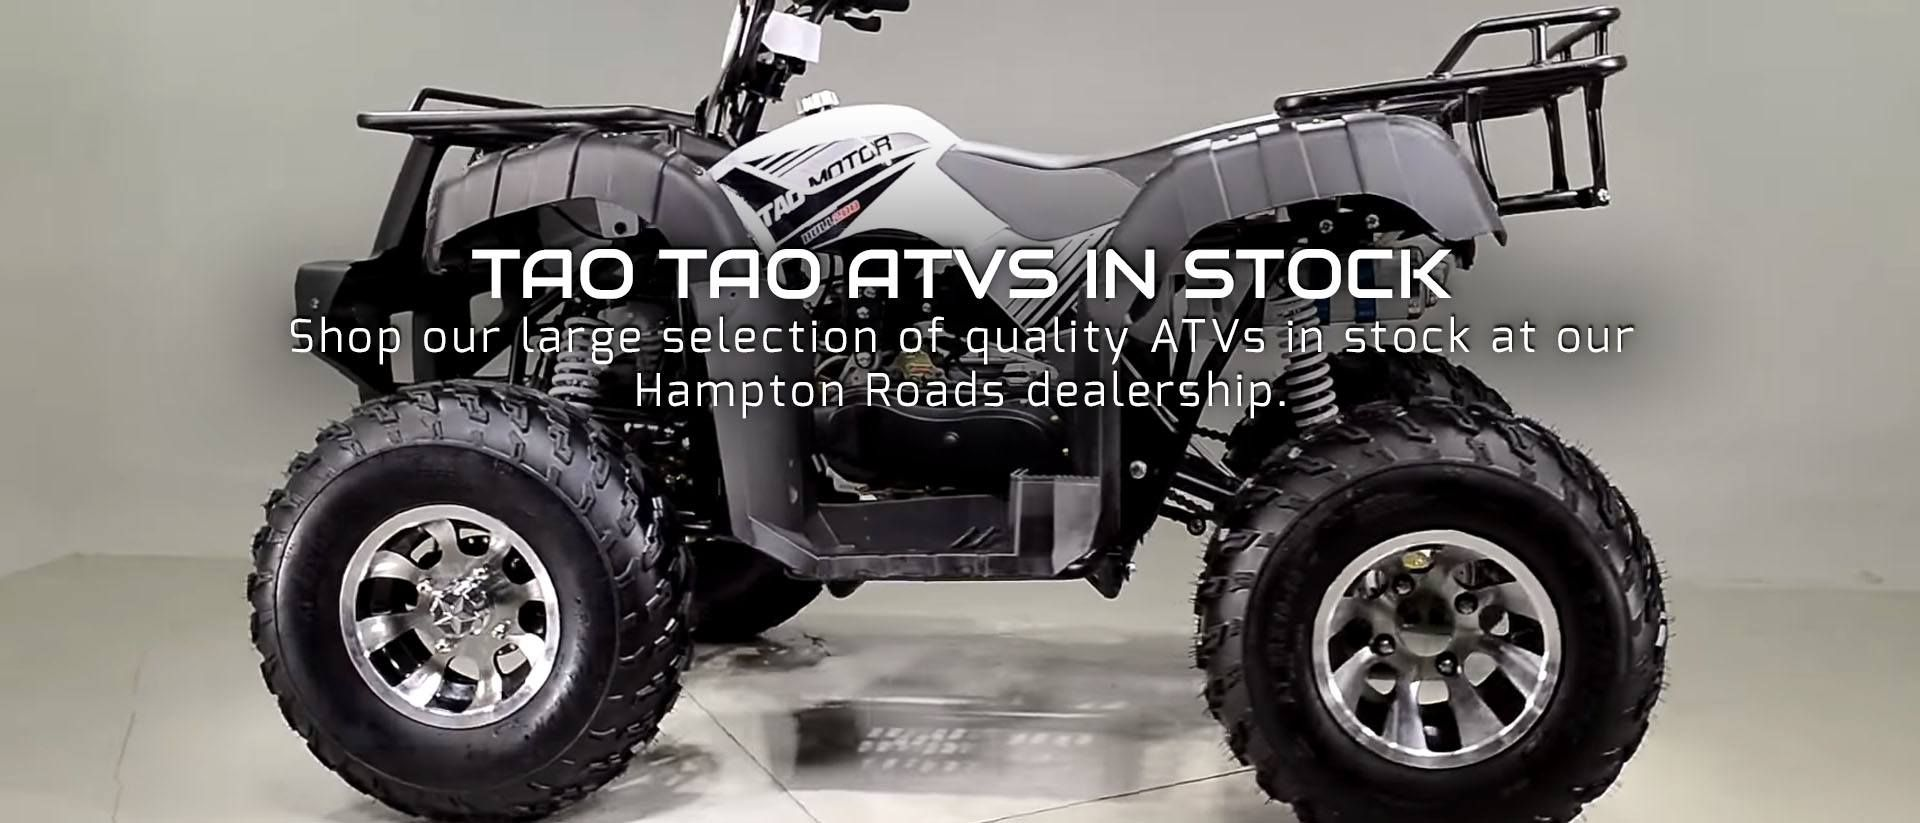 Tao Tao Dealers Near Me >> Fusion Cycles Scooters Mopeds Motorcycles For Sale In